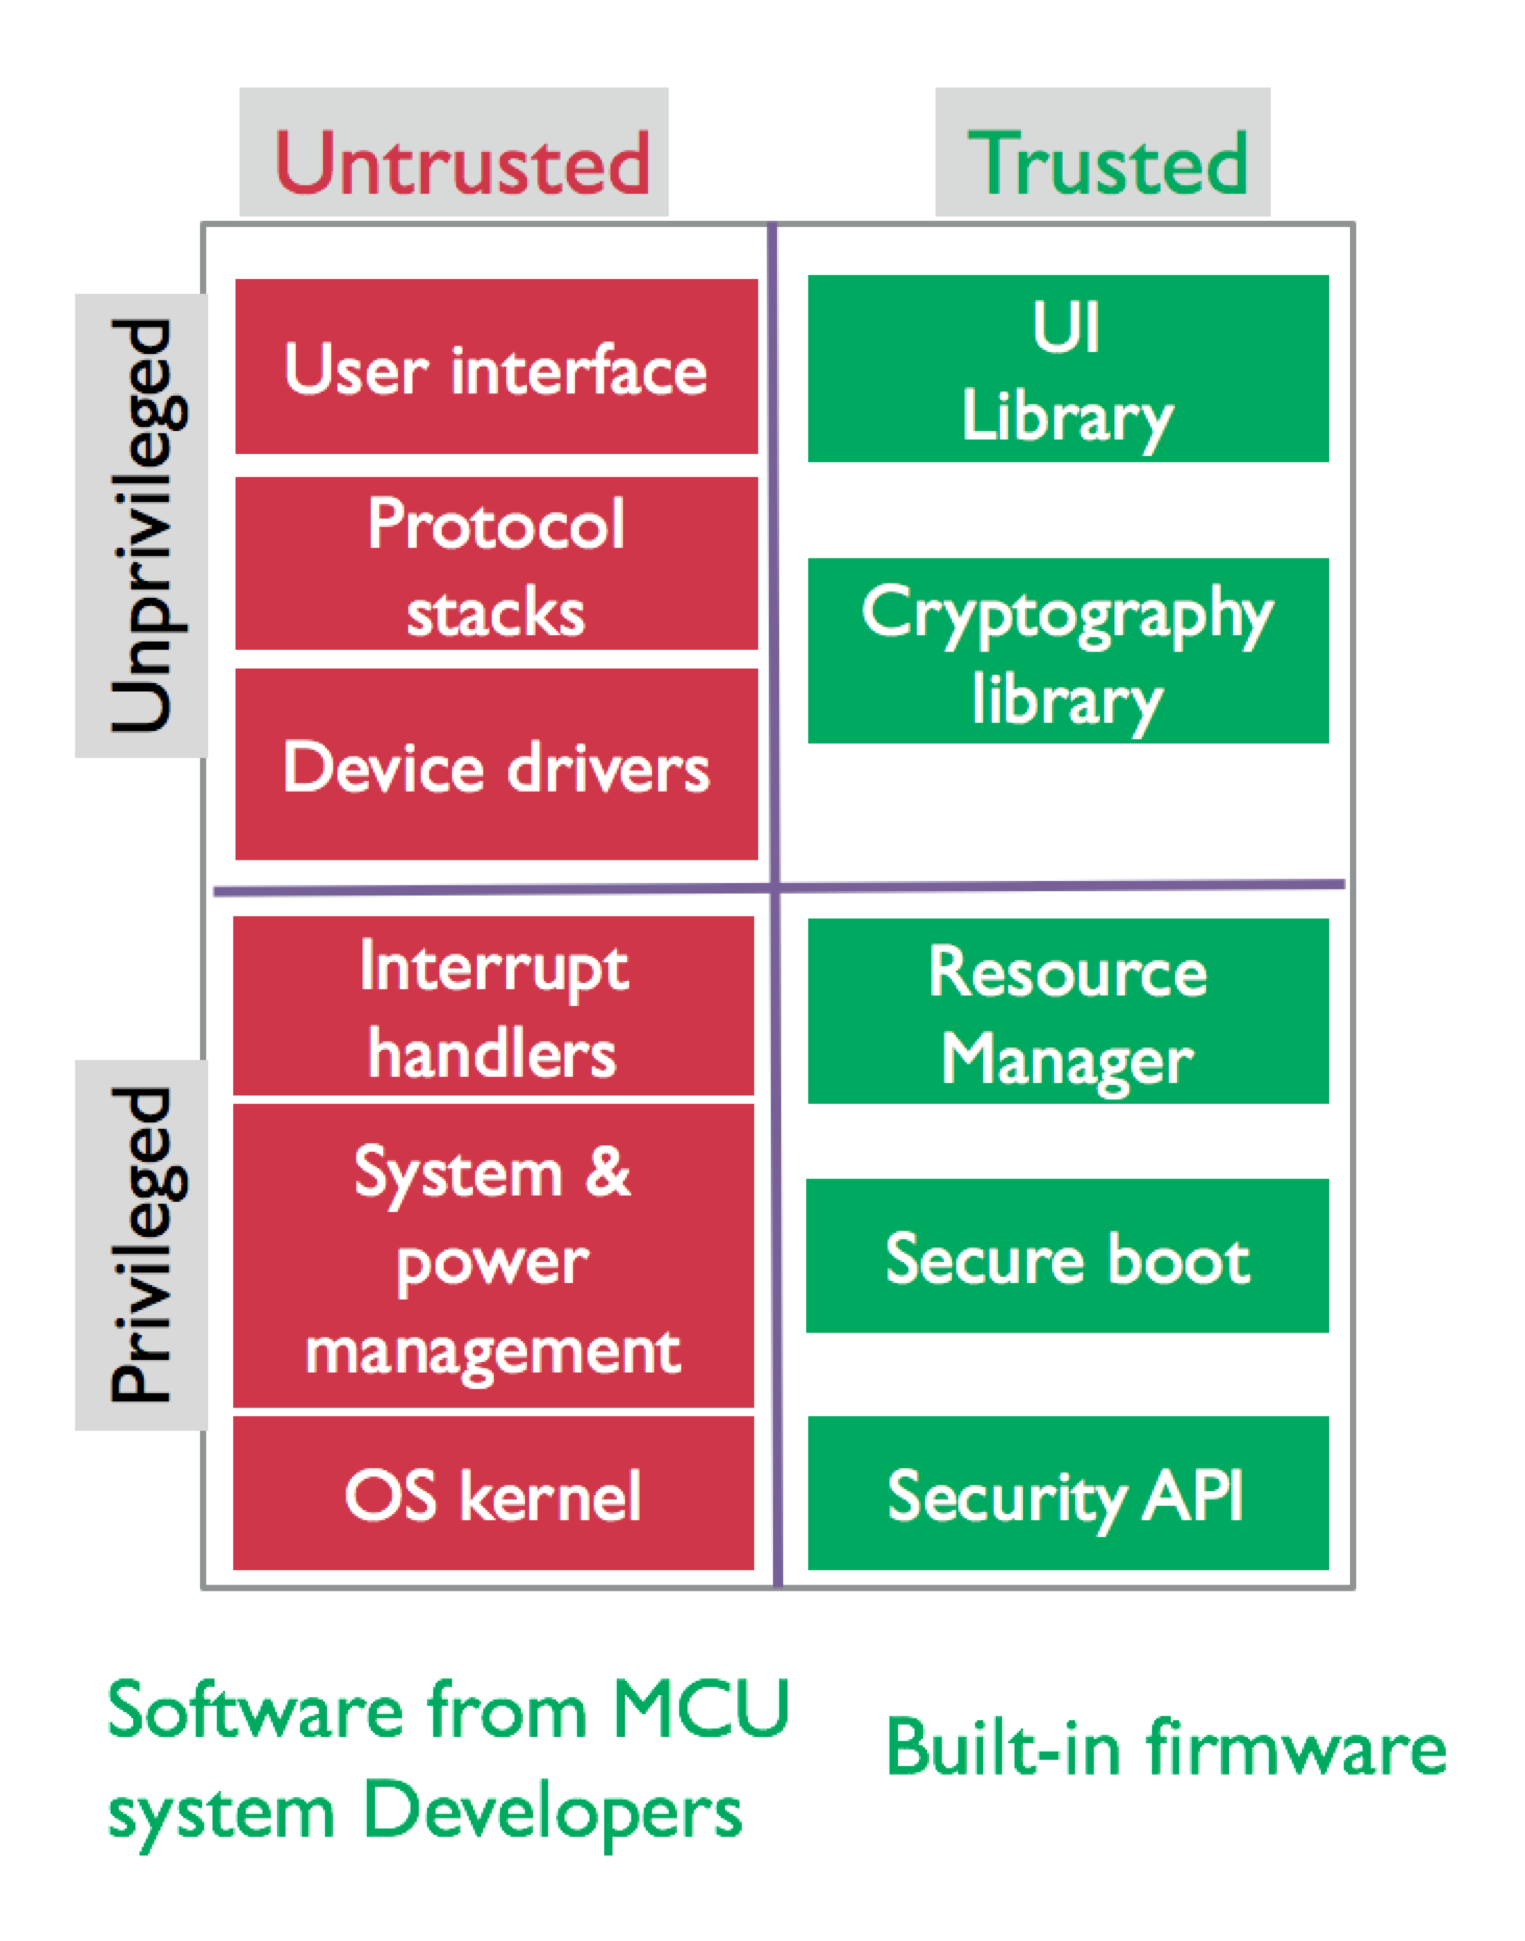 How to get a handle on TrustZone for ARMv8-M software development